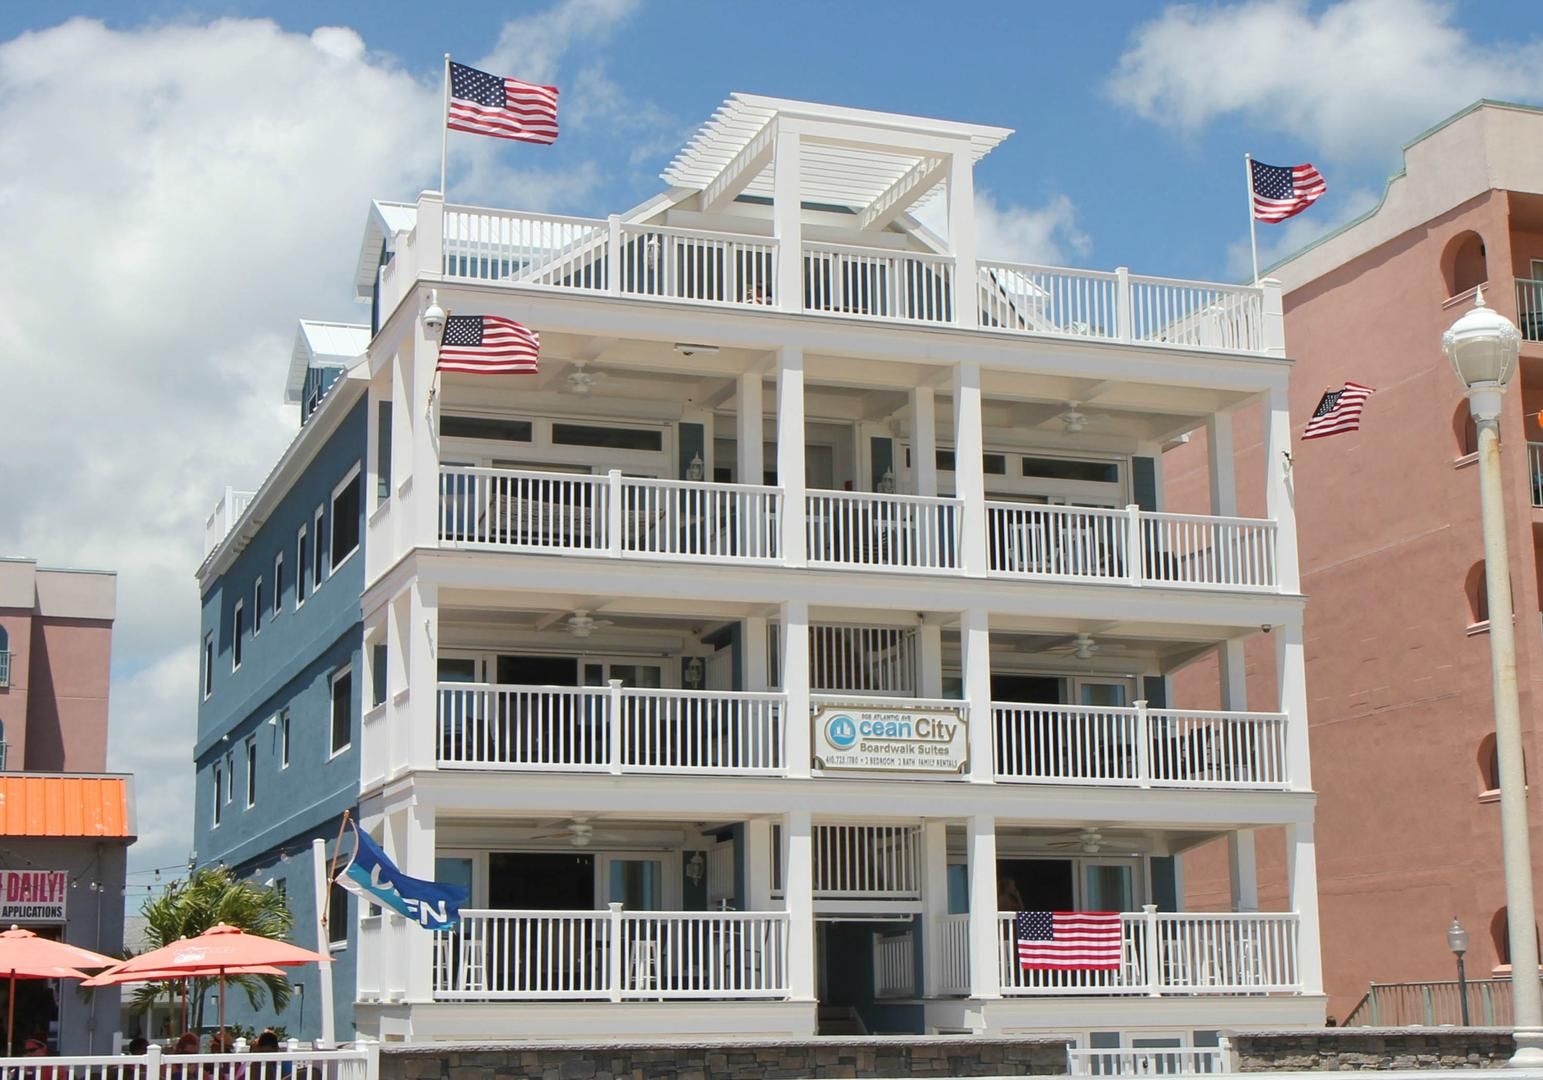 OC Boardwalk Suites N1 - Exterior